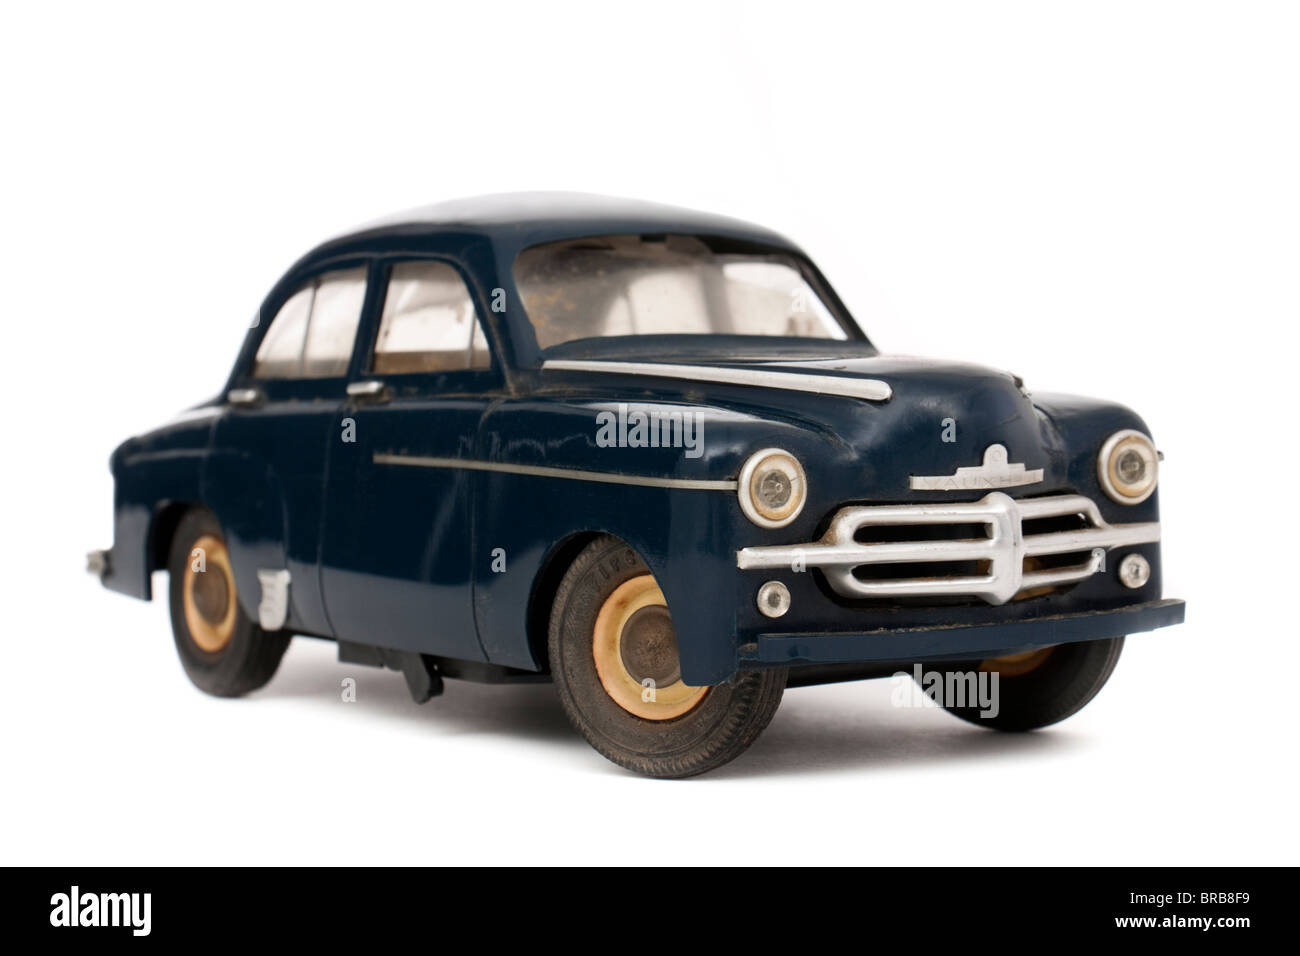 Vintage 1950's battery-operated Vauxhall Velox (GM) 1:18 scale model car by Victory Industries - Stock Image